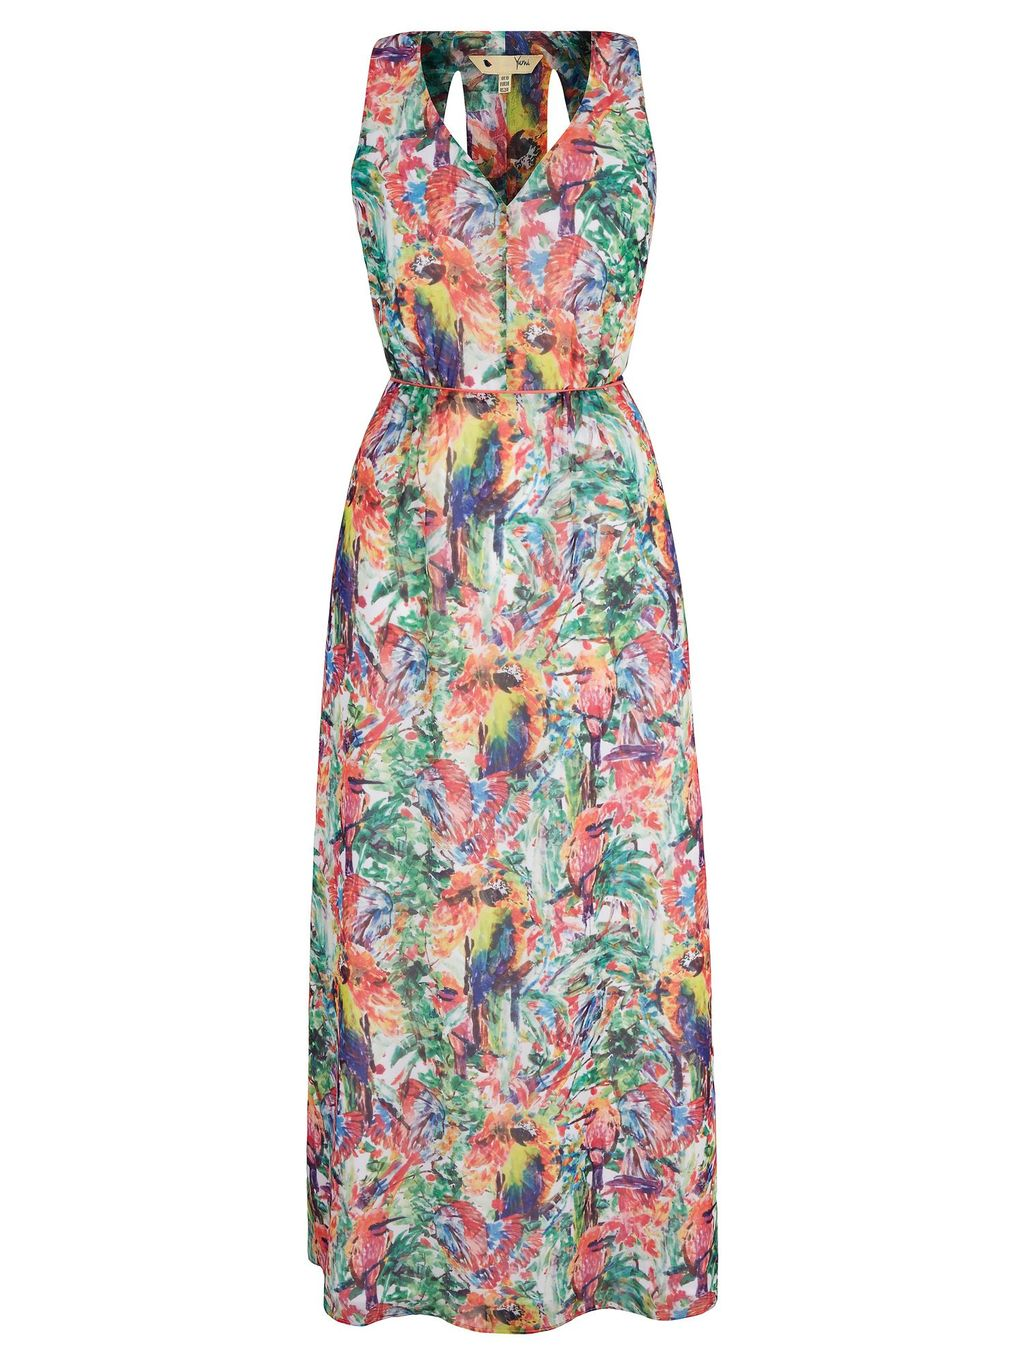 Tropical Parrot Print Maxi Dress, Multi Coloured - neckline: low v-neck; fit: fitted at waist; sleeve style: sleeveless; style: maxi dress; length: ankle length; waist detail: fitted waist; secondary colour: pink; predominant colour: turquoise; fibres: polyester/polyamide - 100%; occasions: occasion; sleeve length: sleeveless; pattern type: fabric; pattern: florals; texture group: other - light to midweight; multicoloured: multicoloured; season: s/s 2016; wardrobe: event